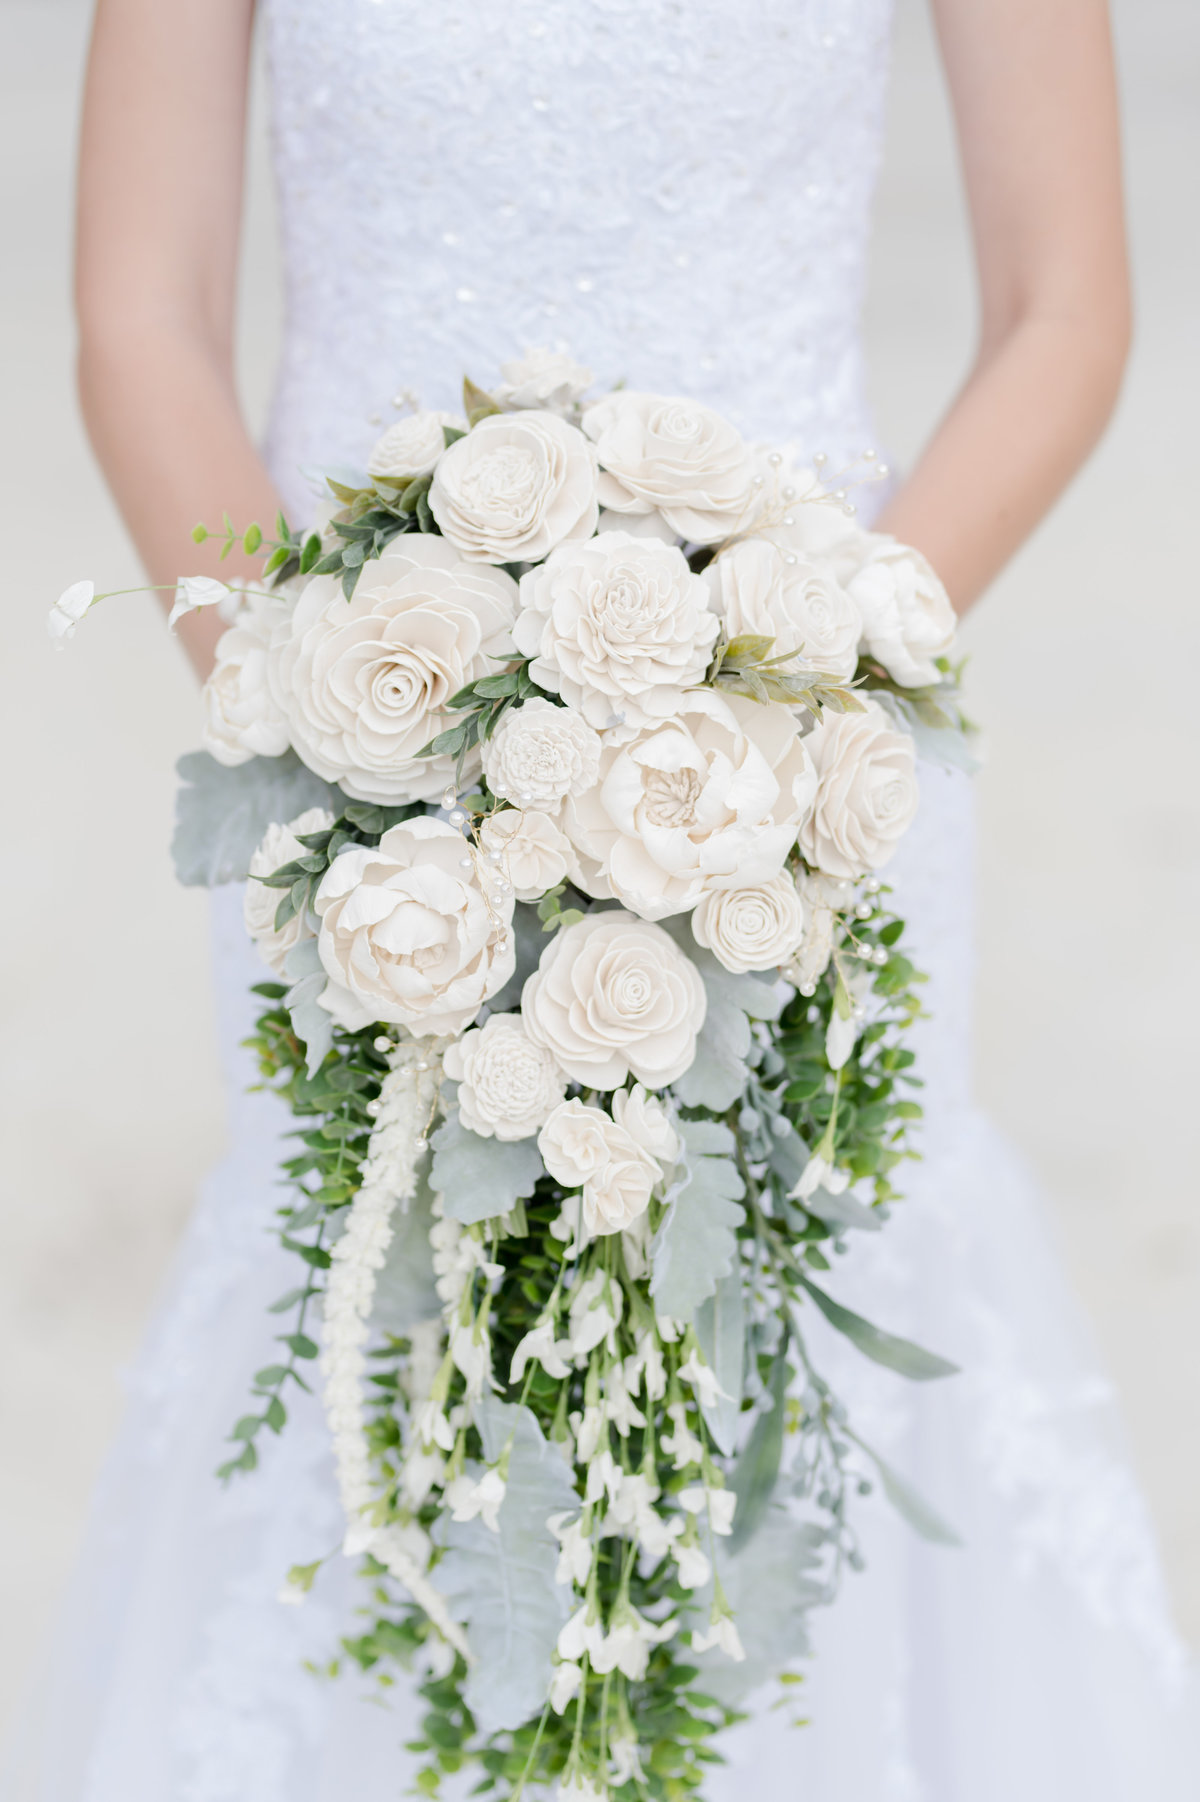 Bride holds beautiful bouquet of white roses and trailing greenery